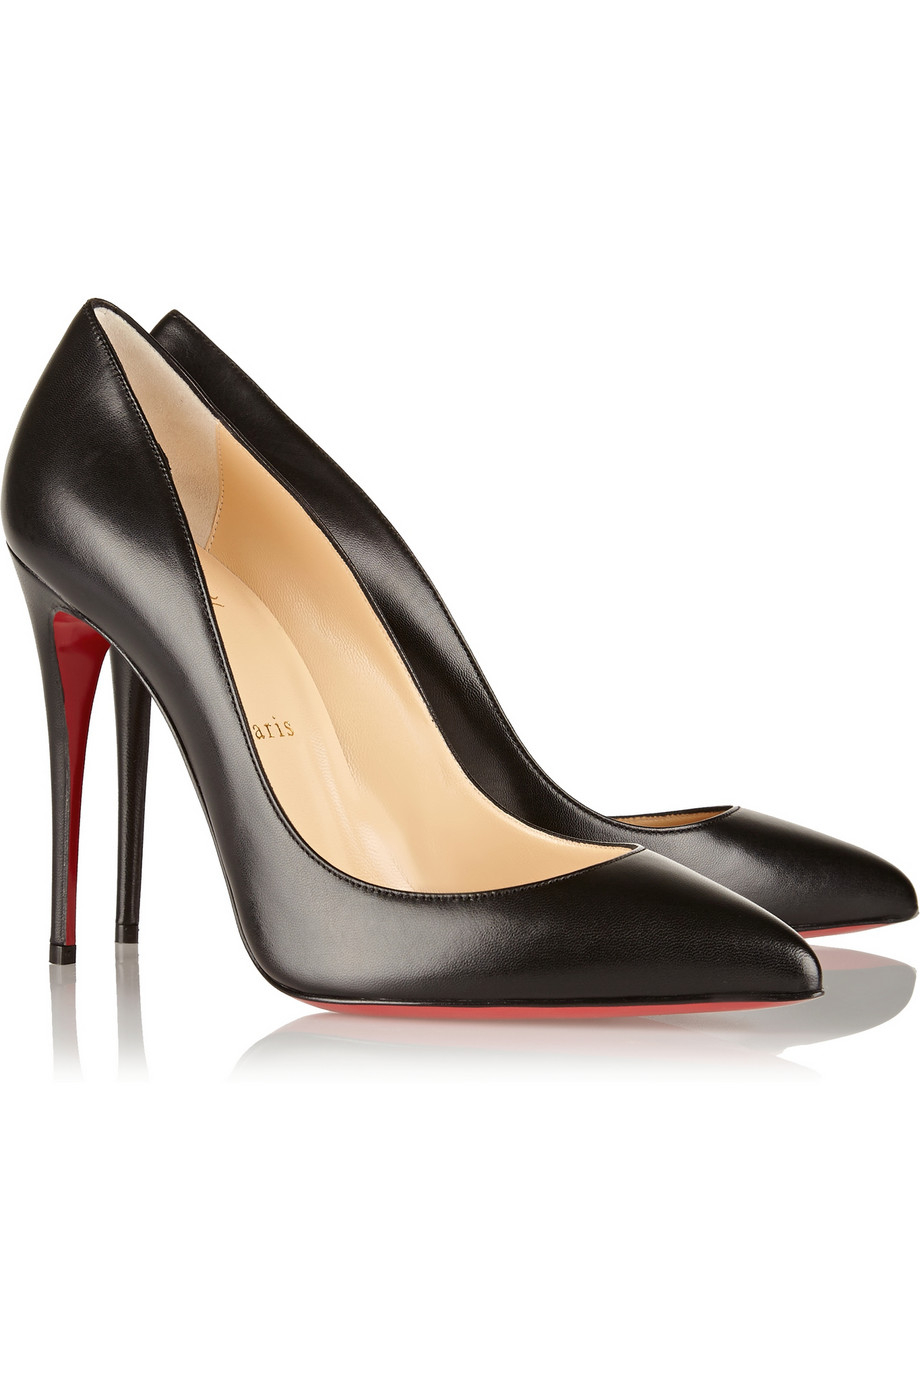 b500bbb1d94 Christian Louboutin Black Pigalle Follies 100 Leather Pumps